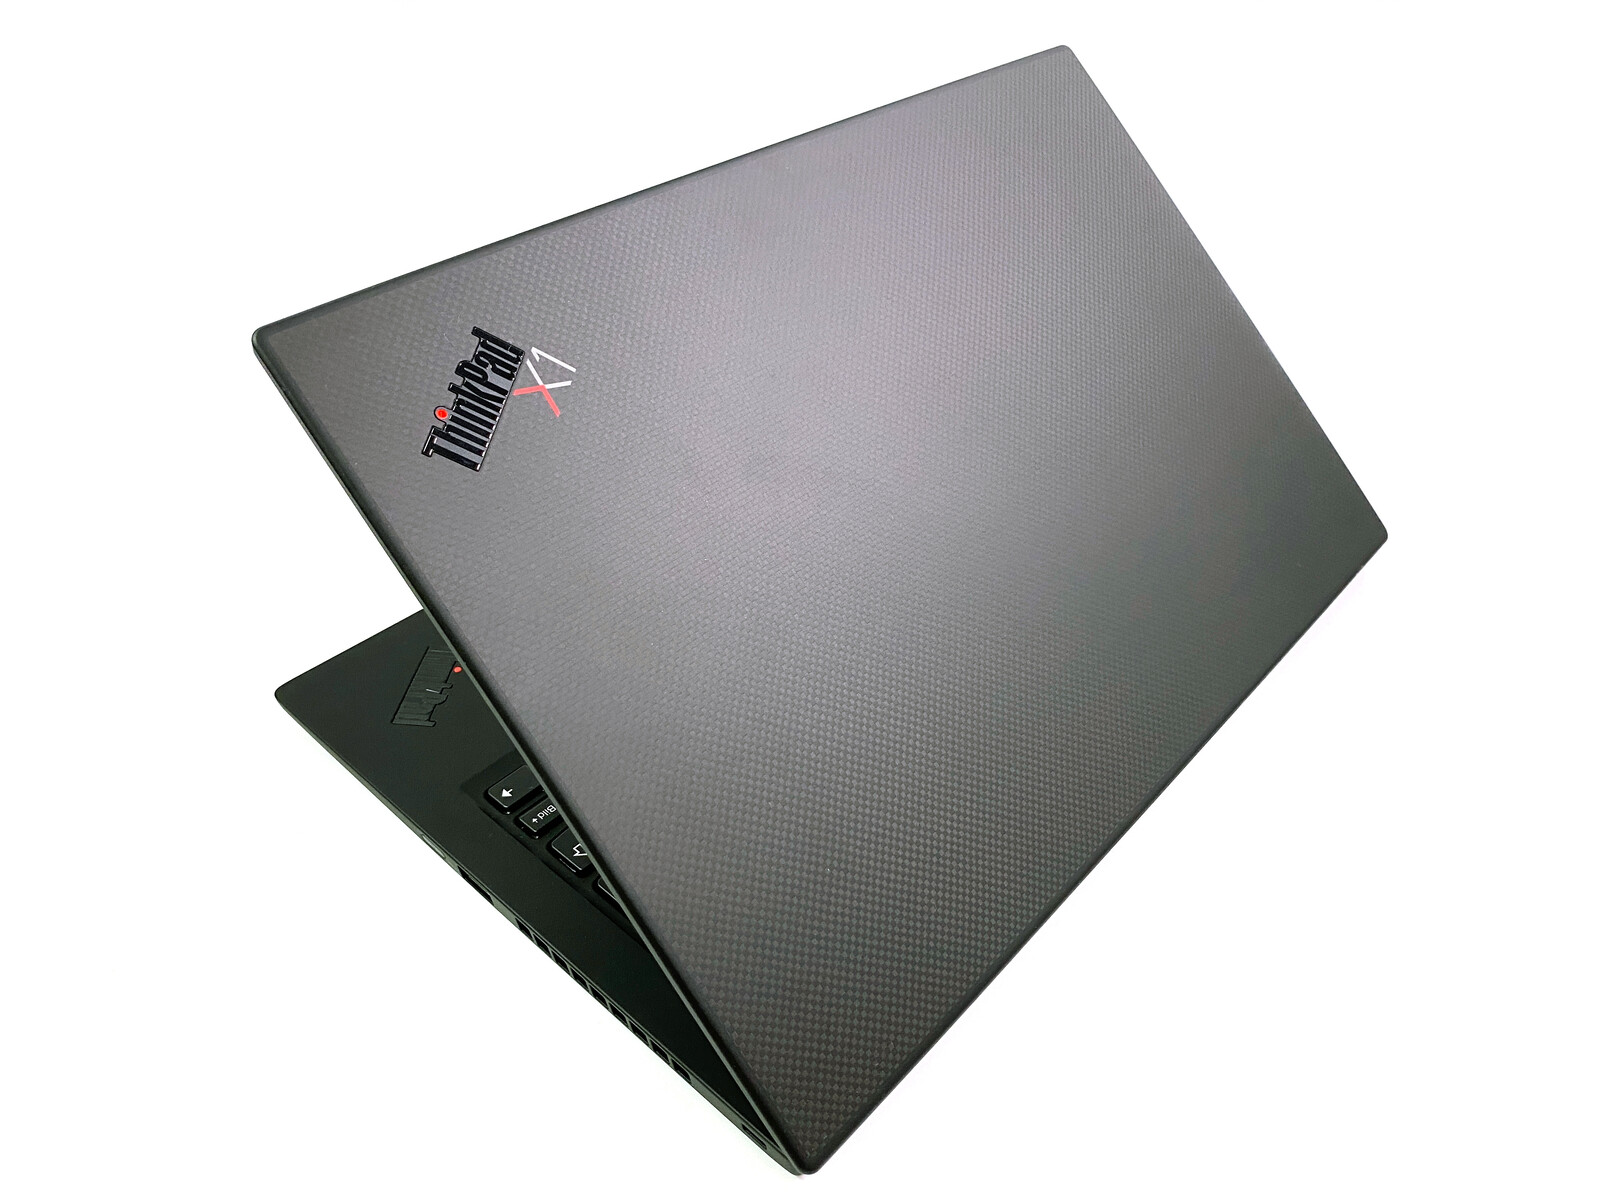 Lenovo ThinkPad X1 Carbon 2020: The 4K display suffers from PWM flickering